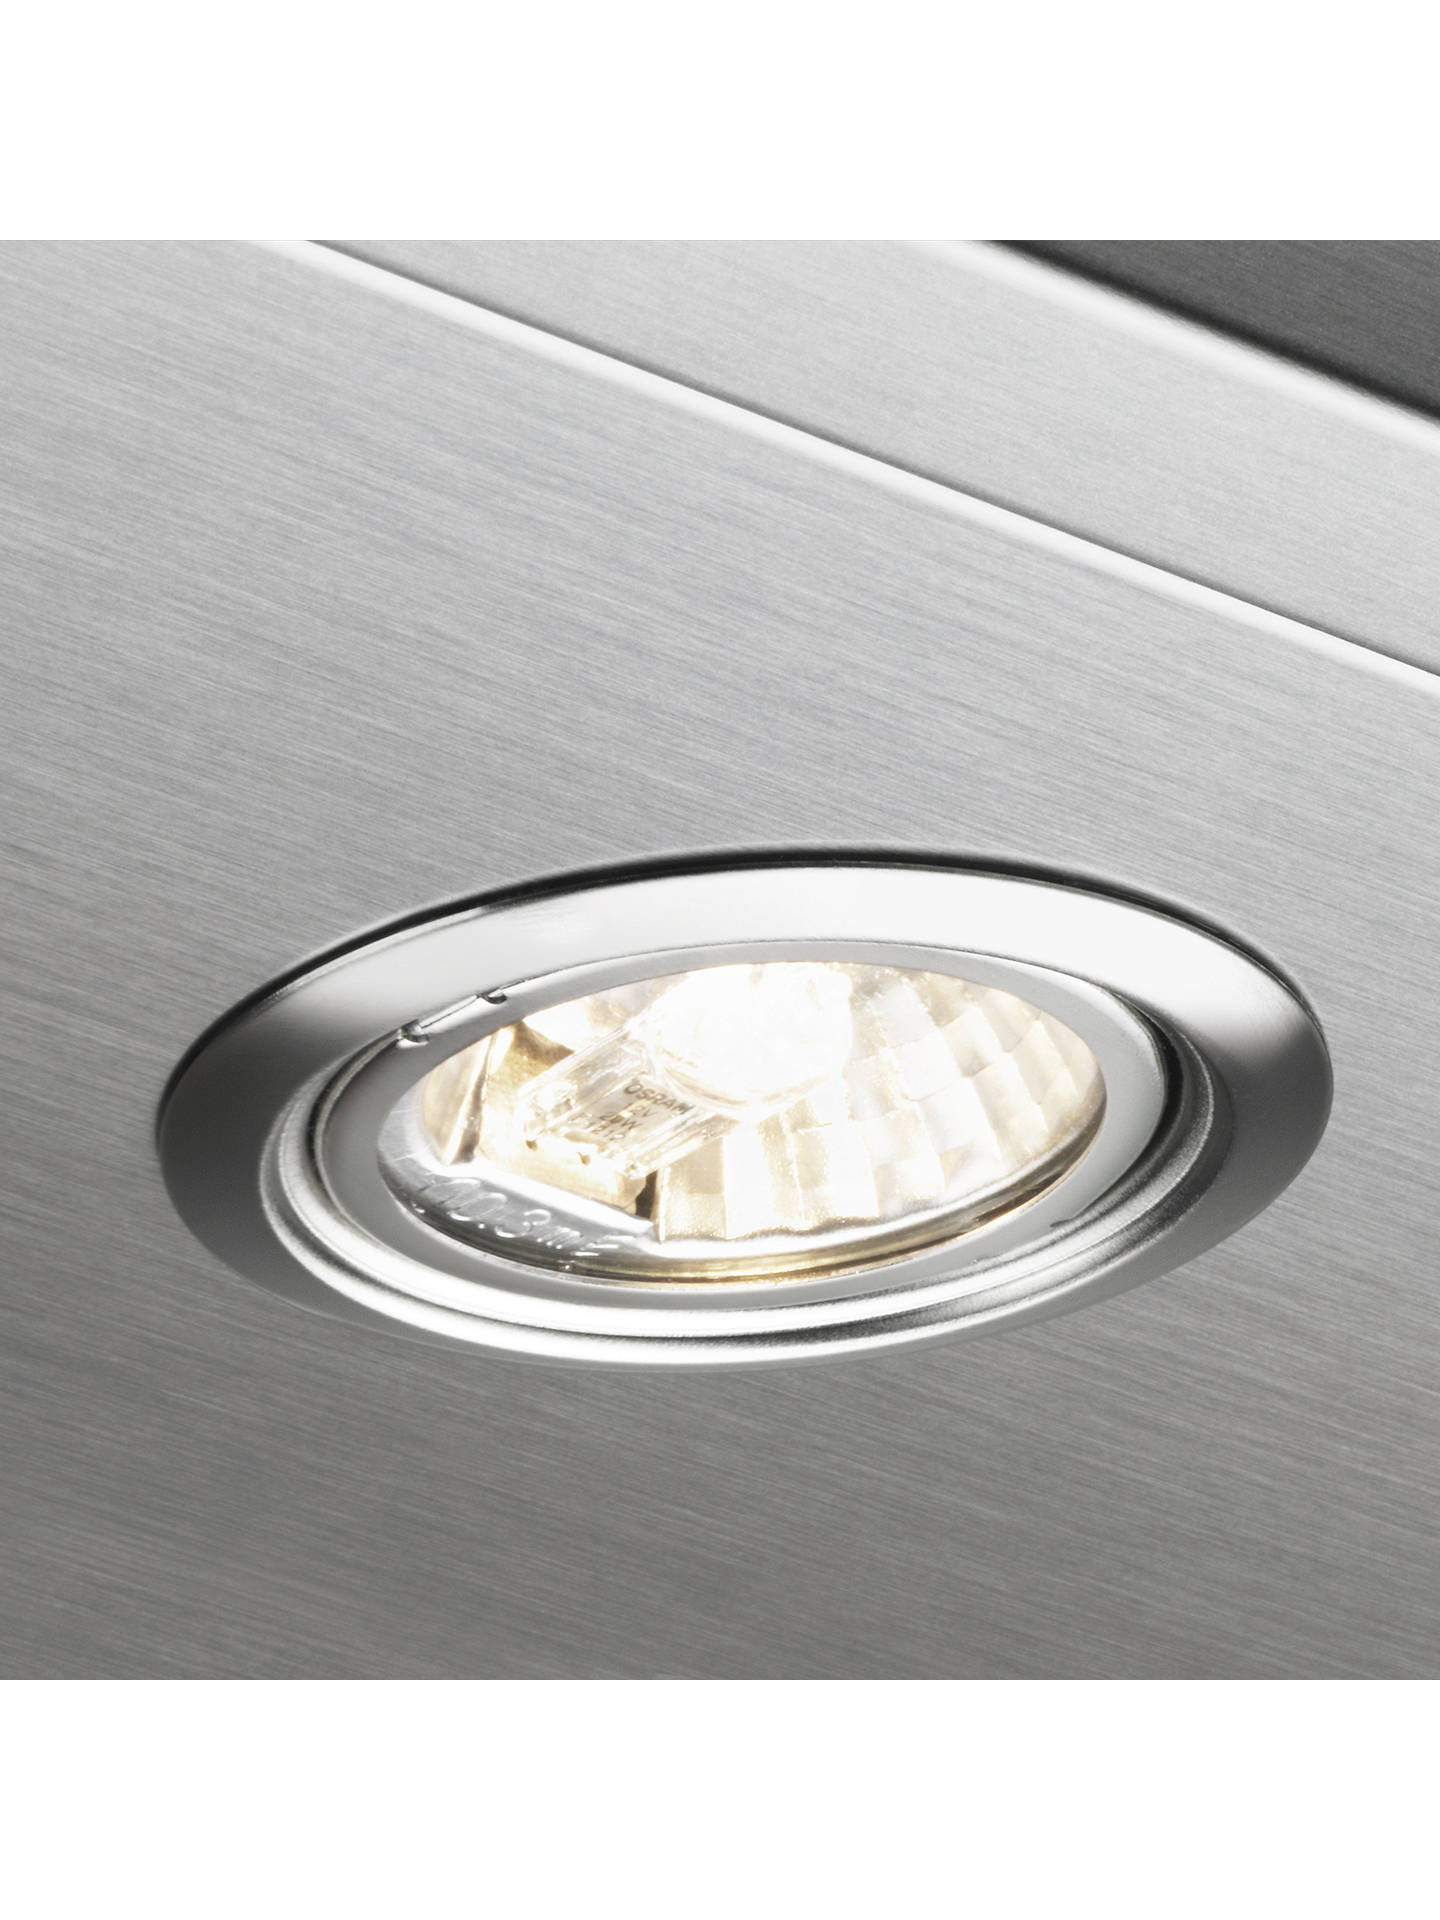 BuyAEG DTB3651M Chimney Cooker Hood, Stainless Steel Online at johnlewis.com